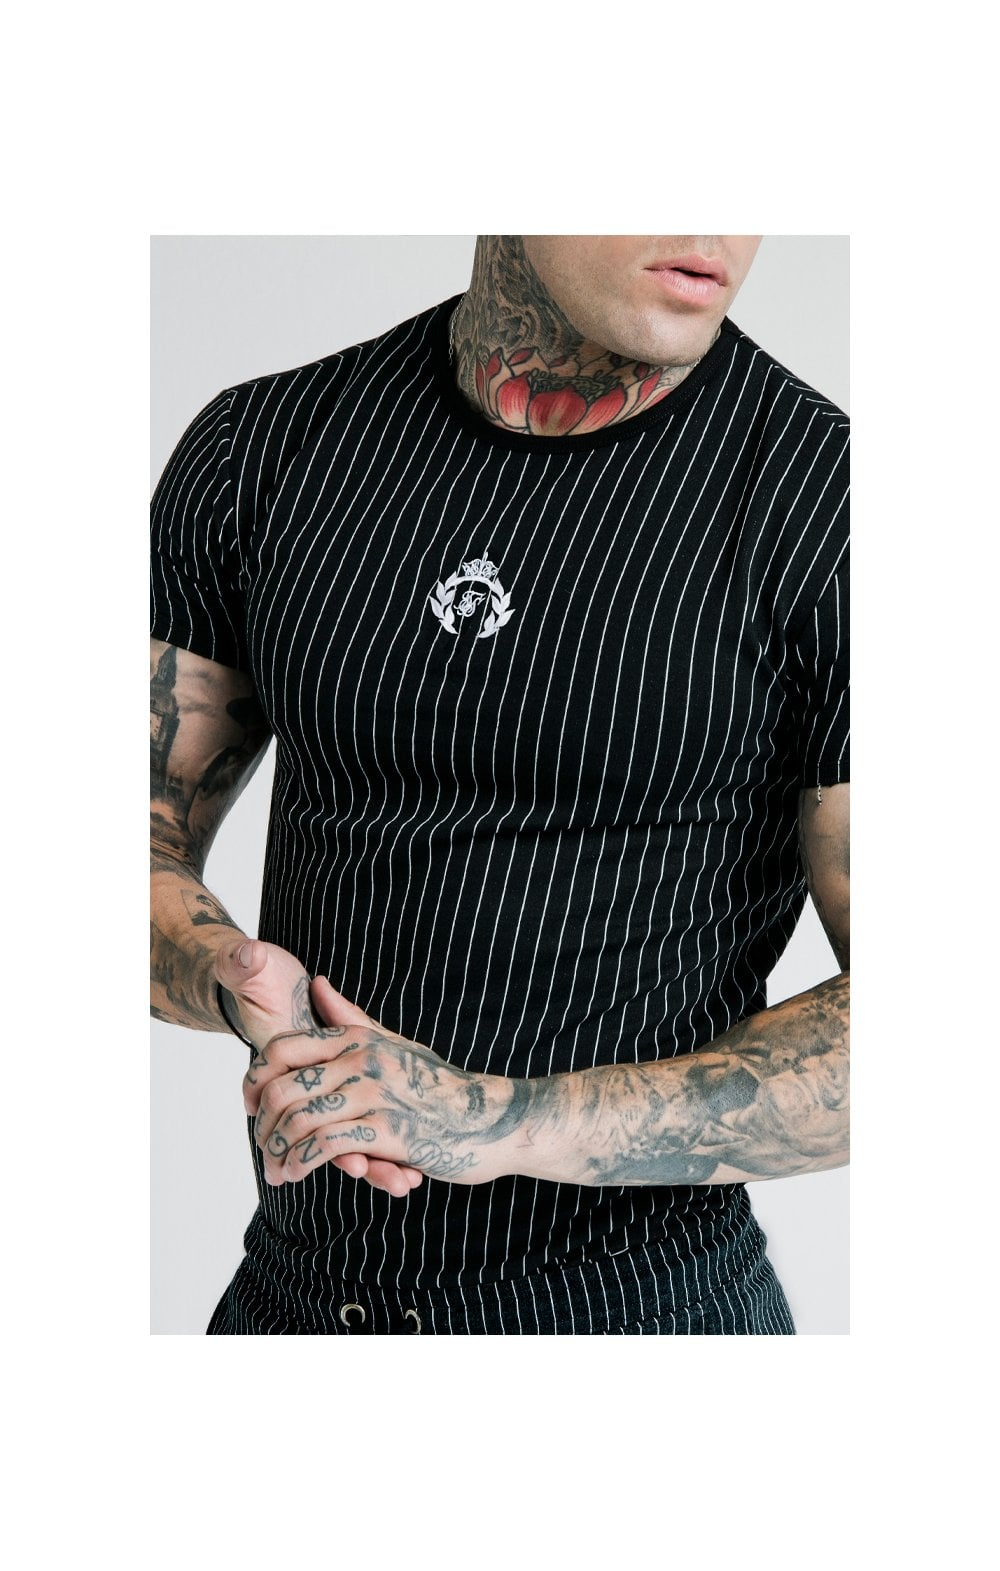 SikSilk X Dani Alves Trainings-T-Shirt Abgerundeter Saum - Schwarzweiss (5)